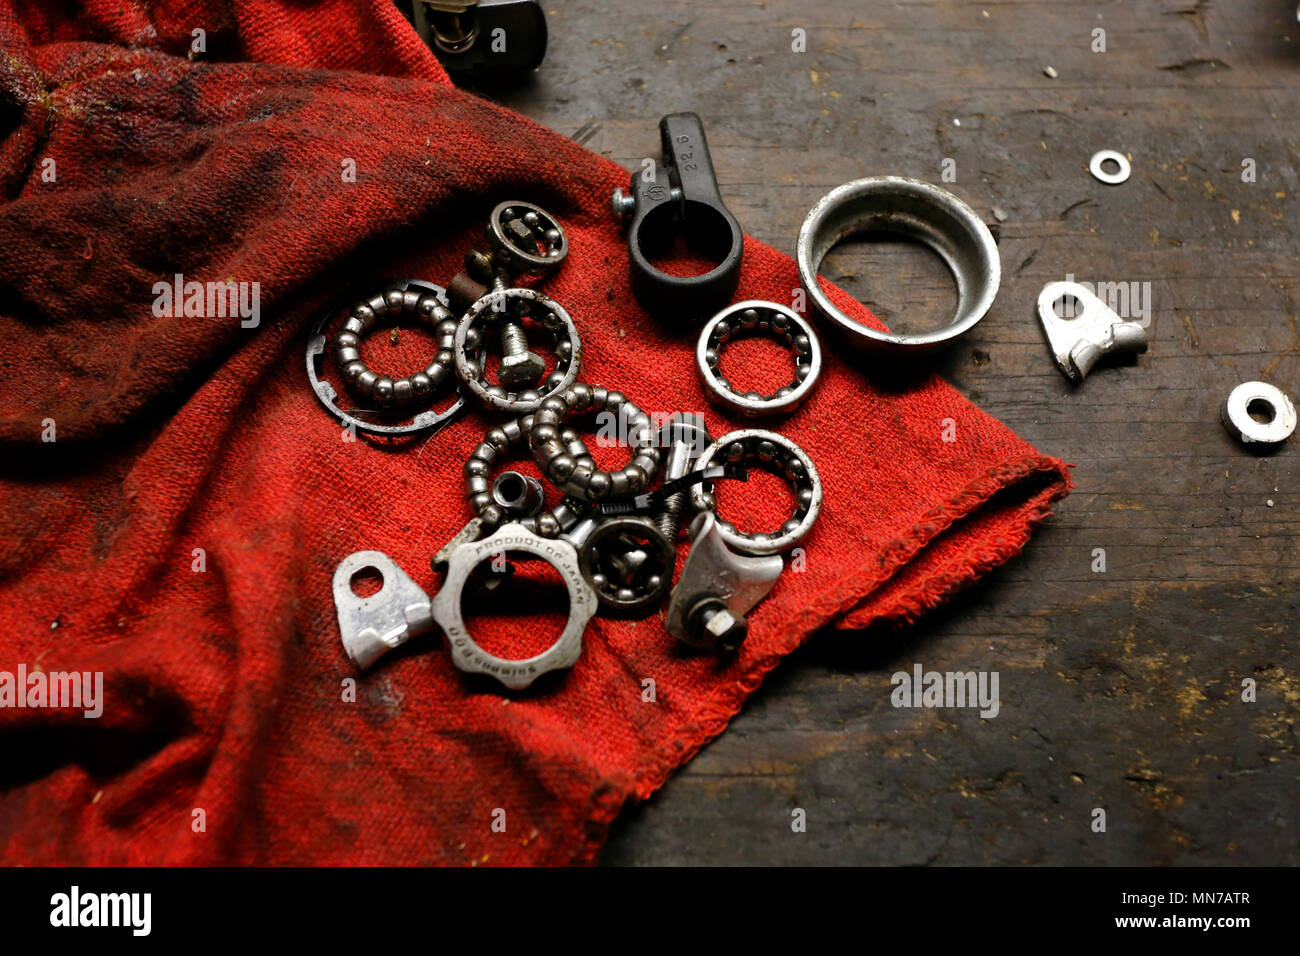 Ball bearings, washers, and other mechanical parts on top of a grease stained table - Stock Image